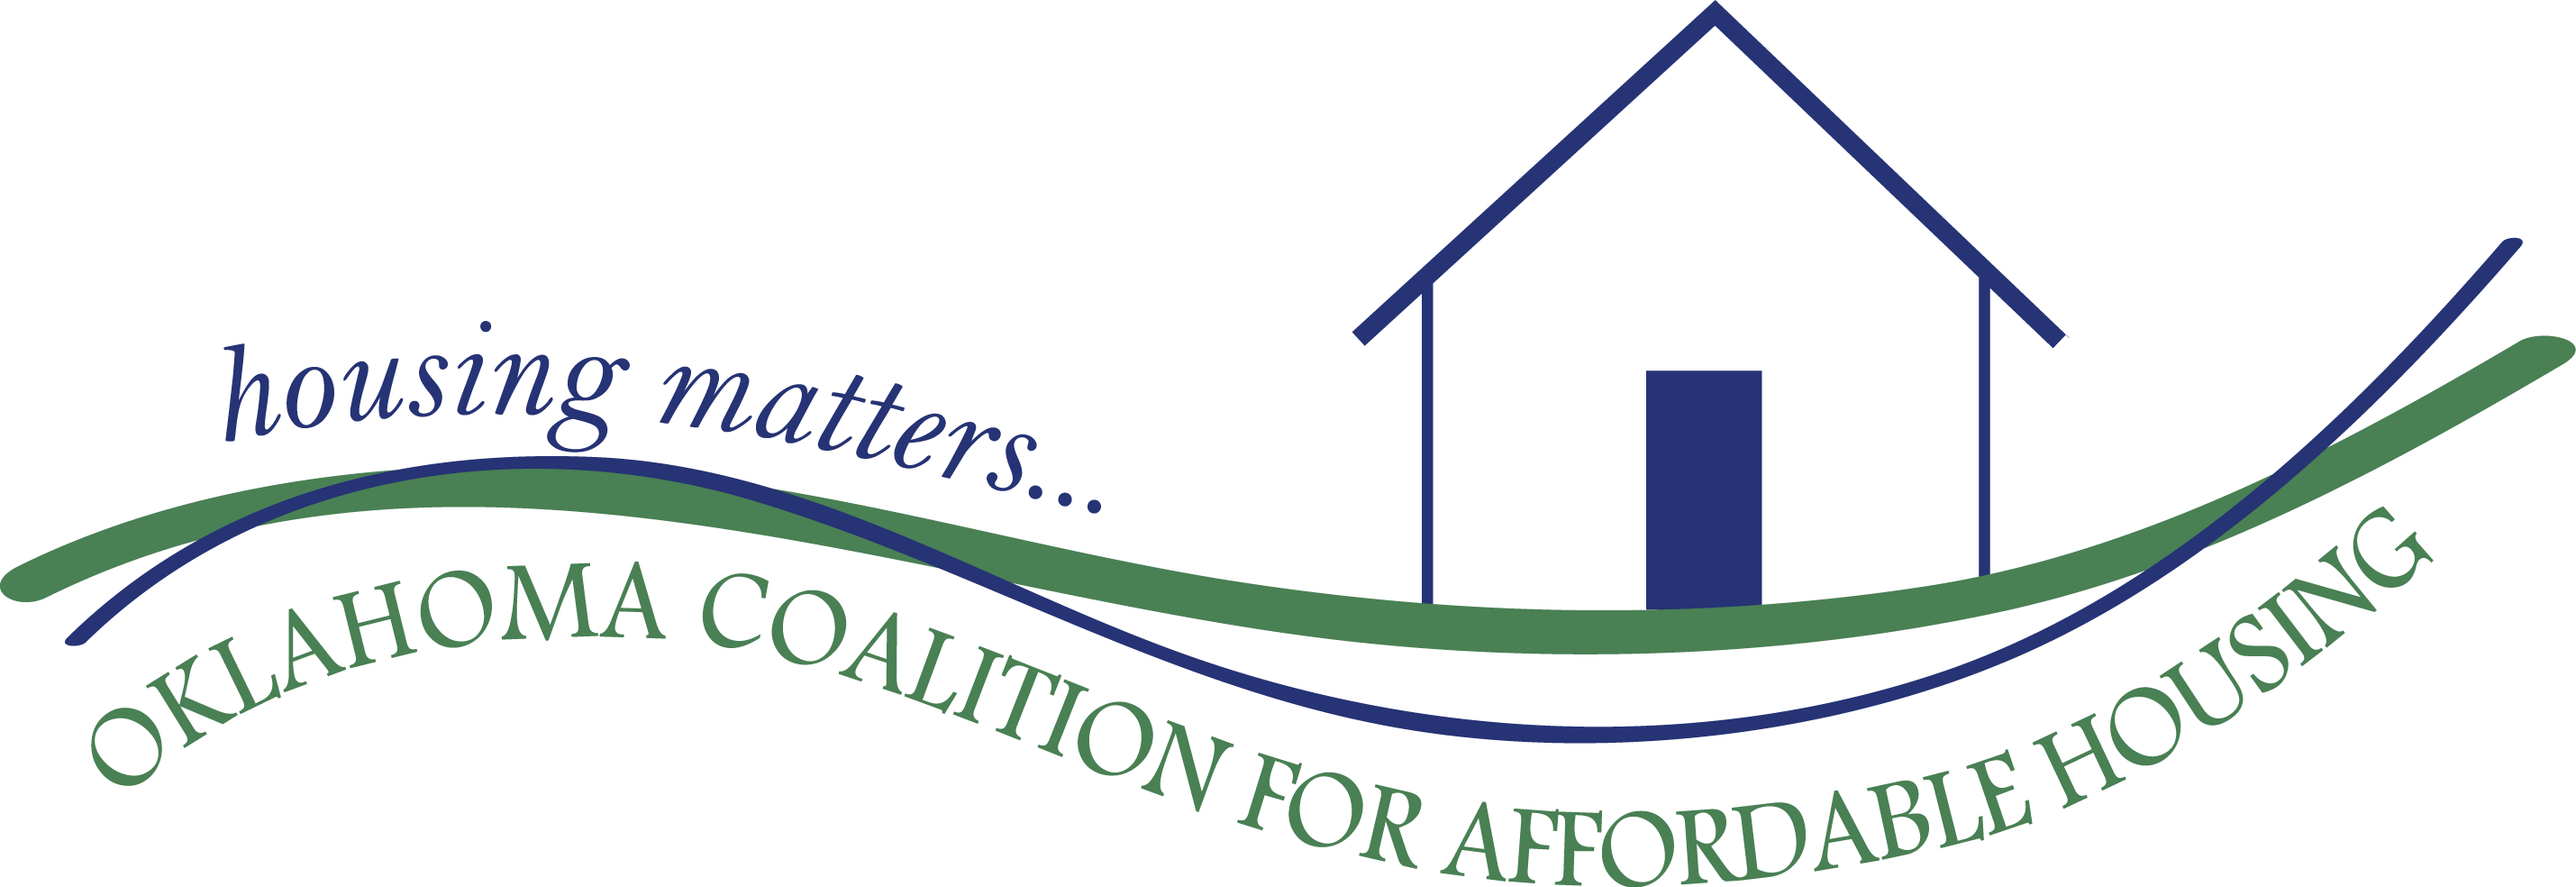 Oklahoma Coalition for Affordable Housing